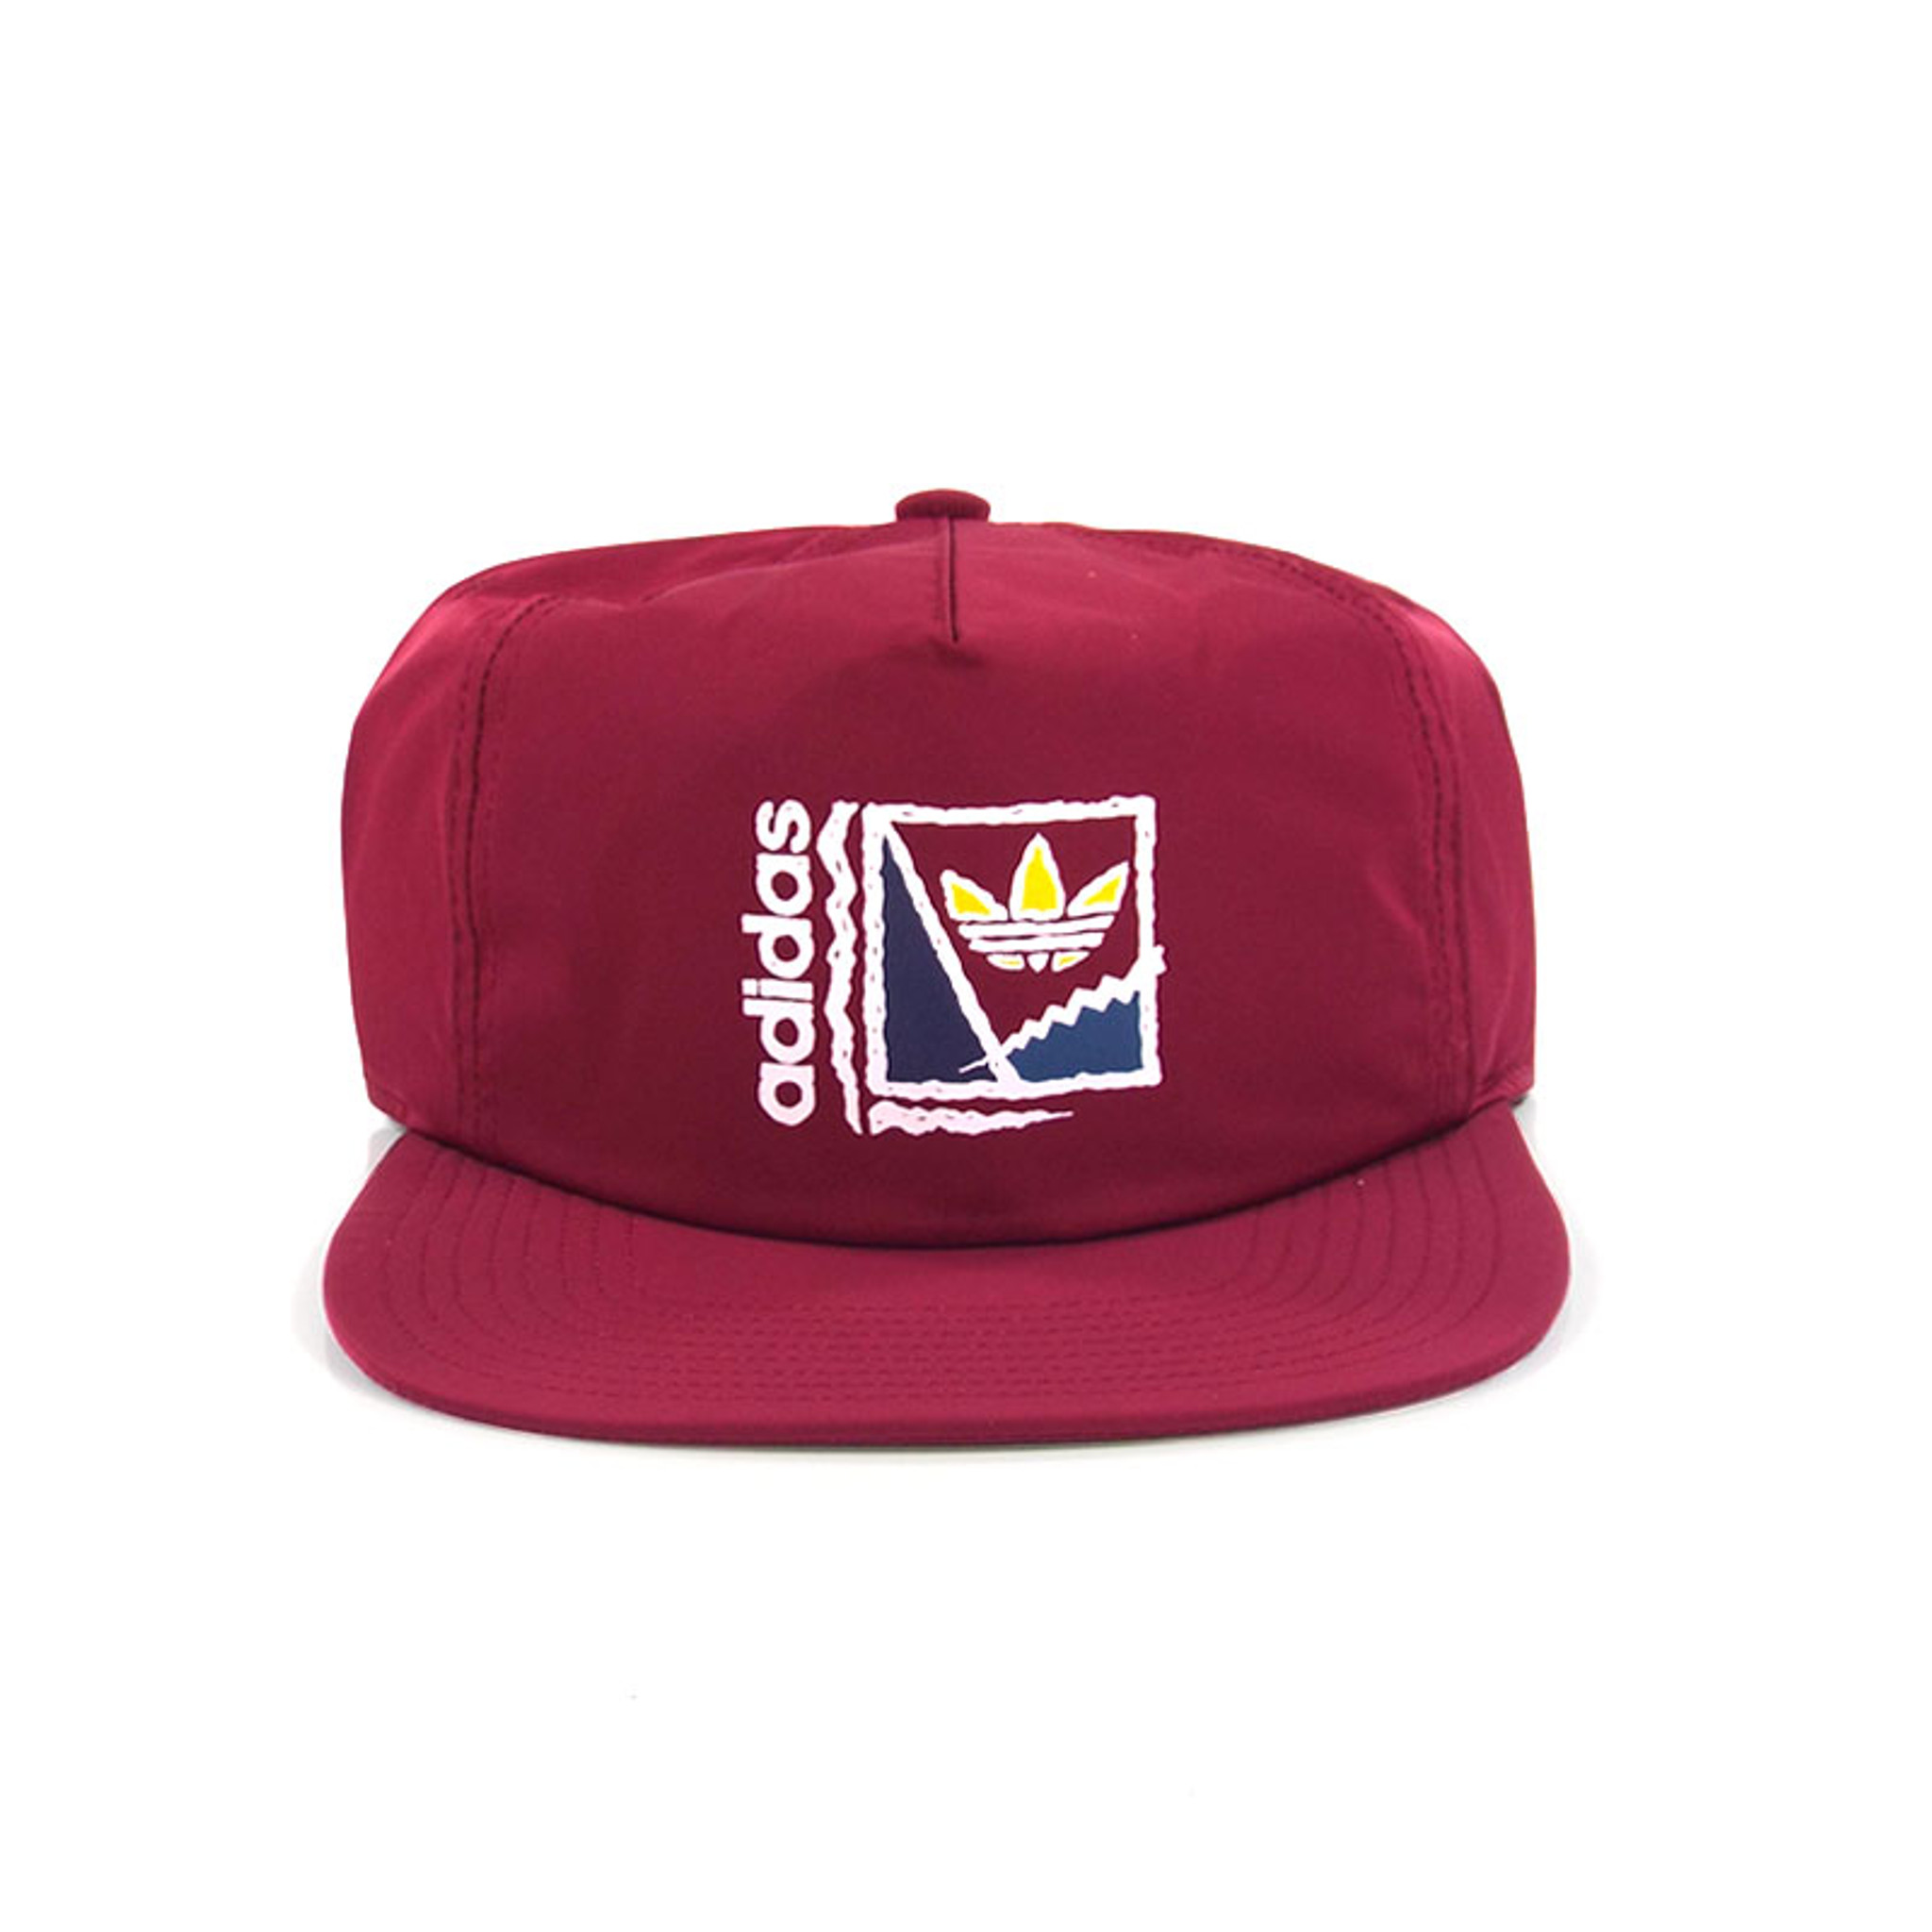 closer at where to buy sale Adidas Court Crusher Strapback Hat - Burgundy